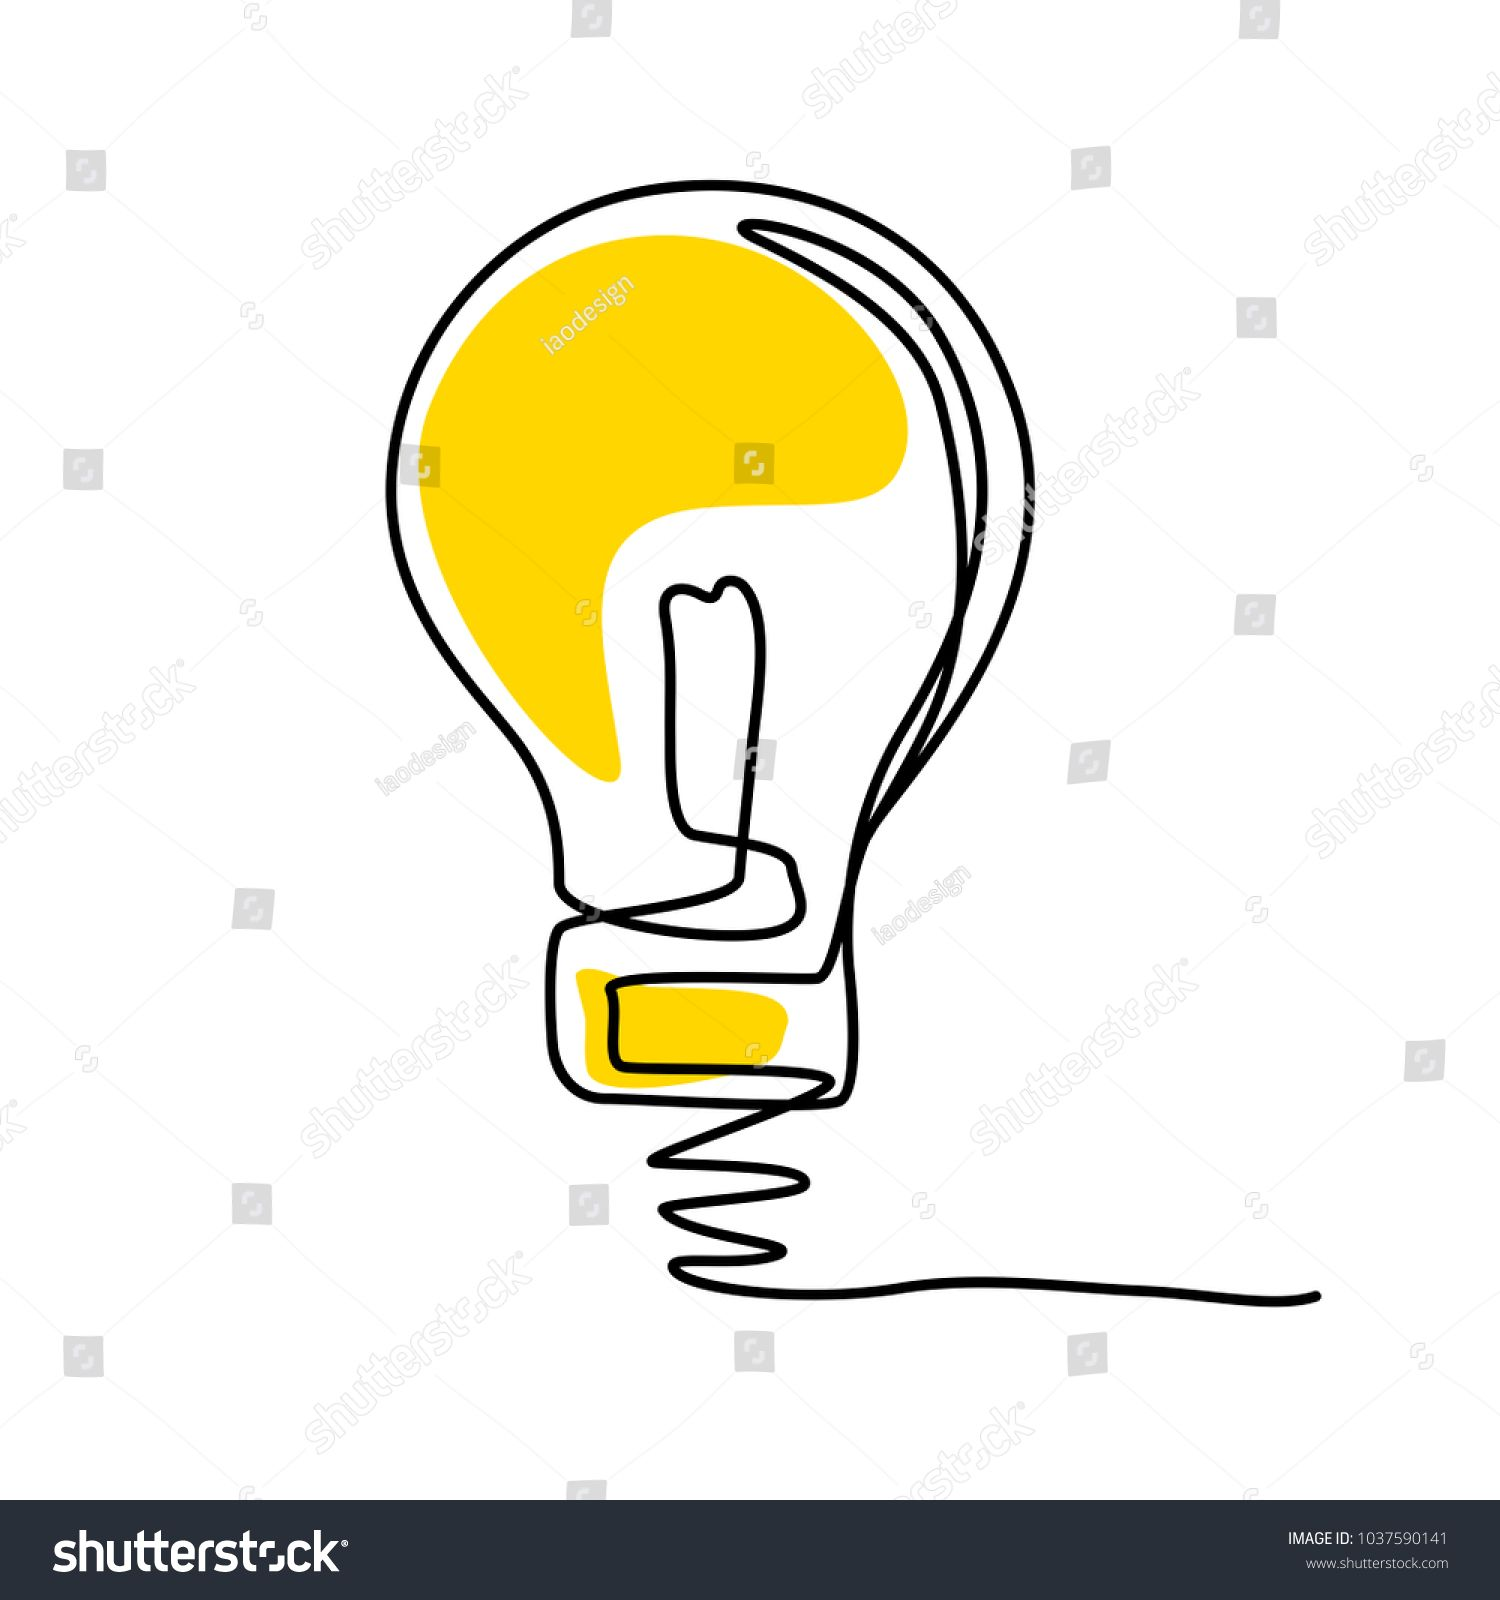 Concept Of Idea With Lightbulb Contour Drawing And Sketch Vector Illustration And Simple Design Ad Sp Contour Drawing Light Bulb Drawing Sketches Simple